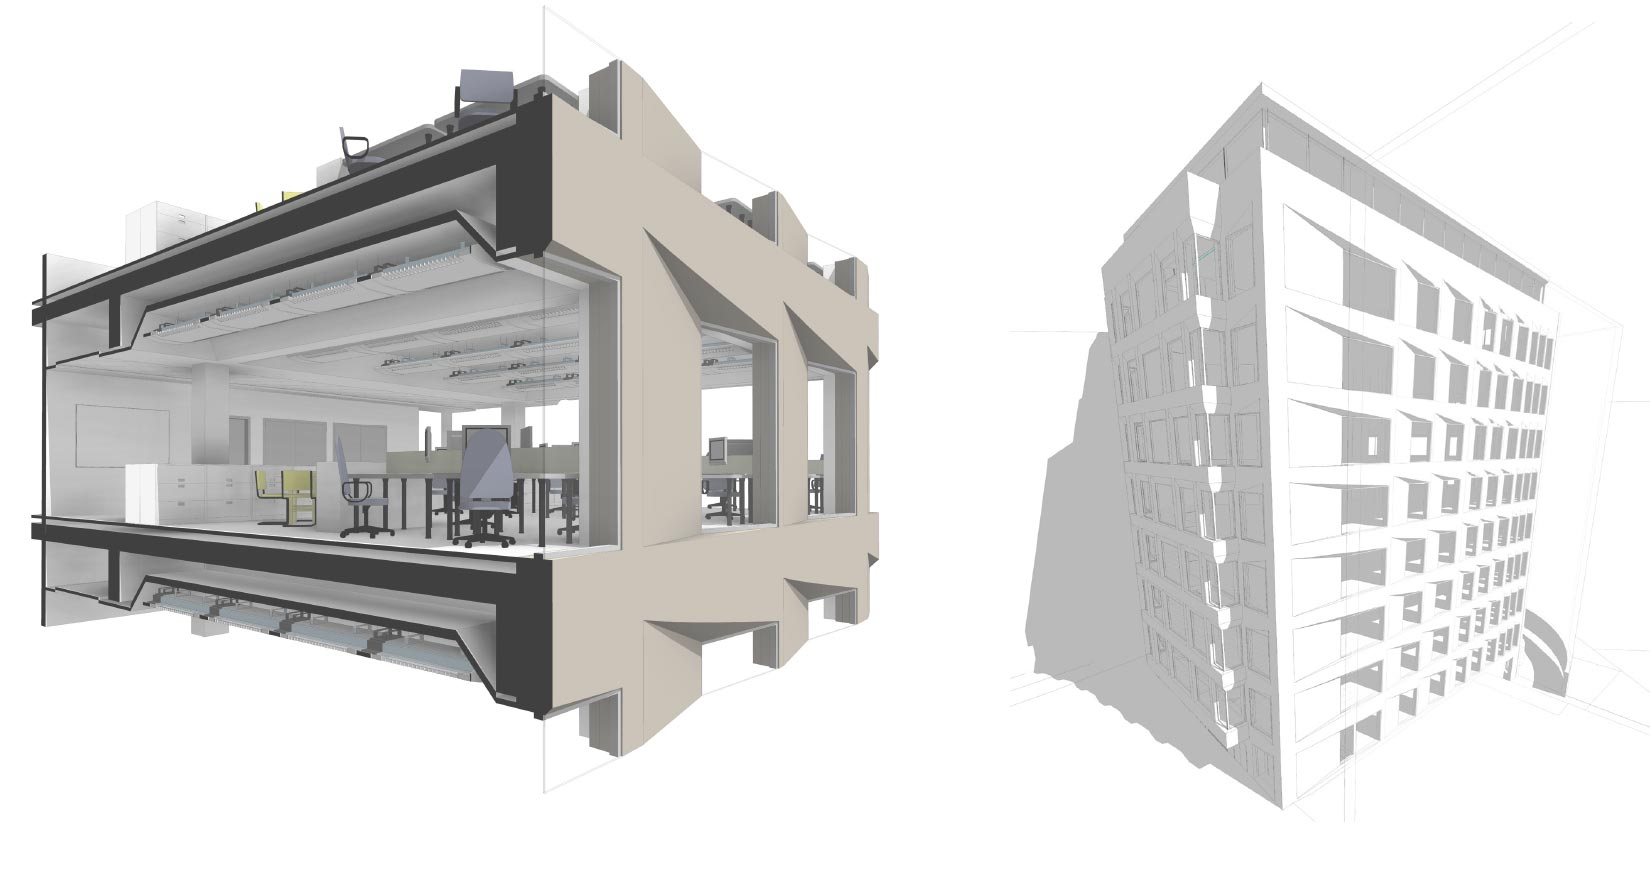 20 Saint Andrews House, Holburn, London, BIM Sections